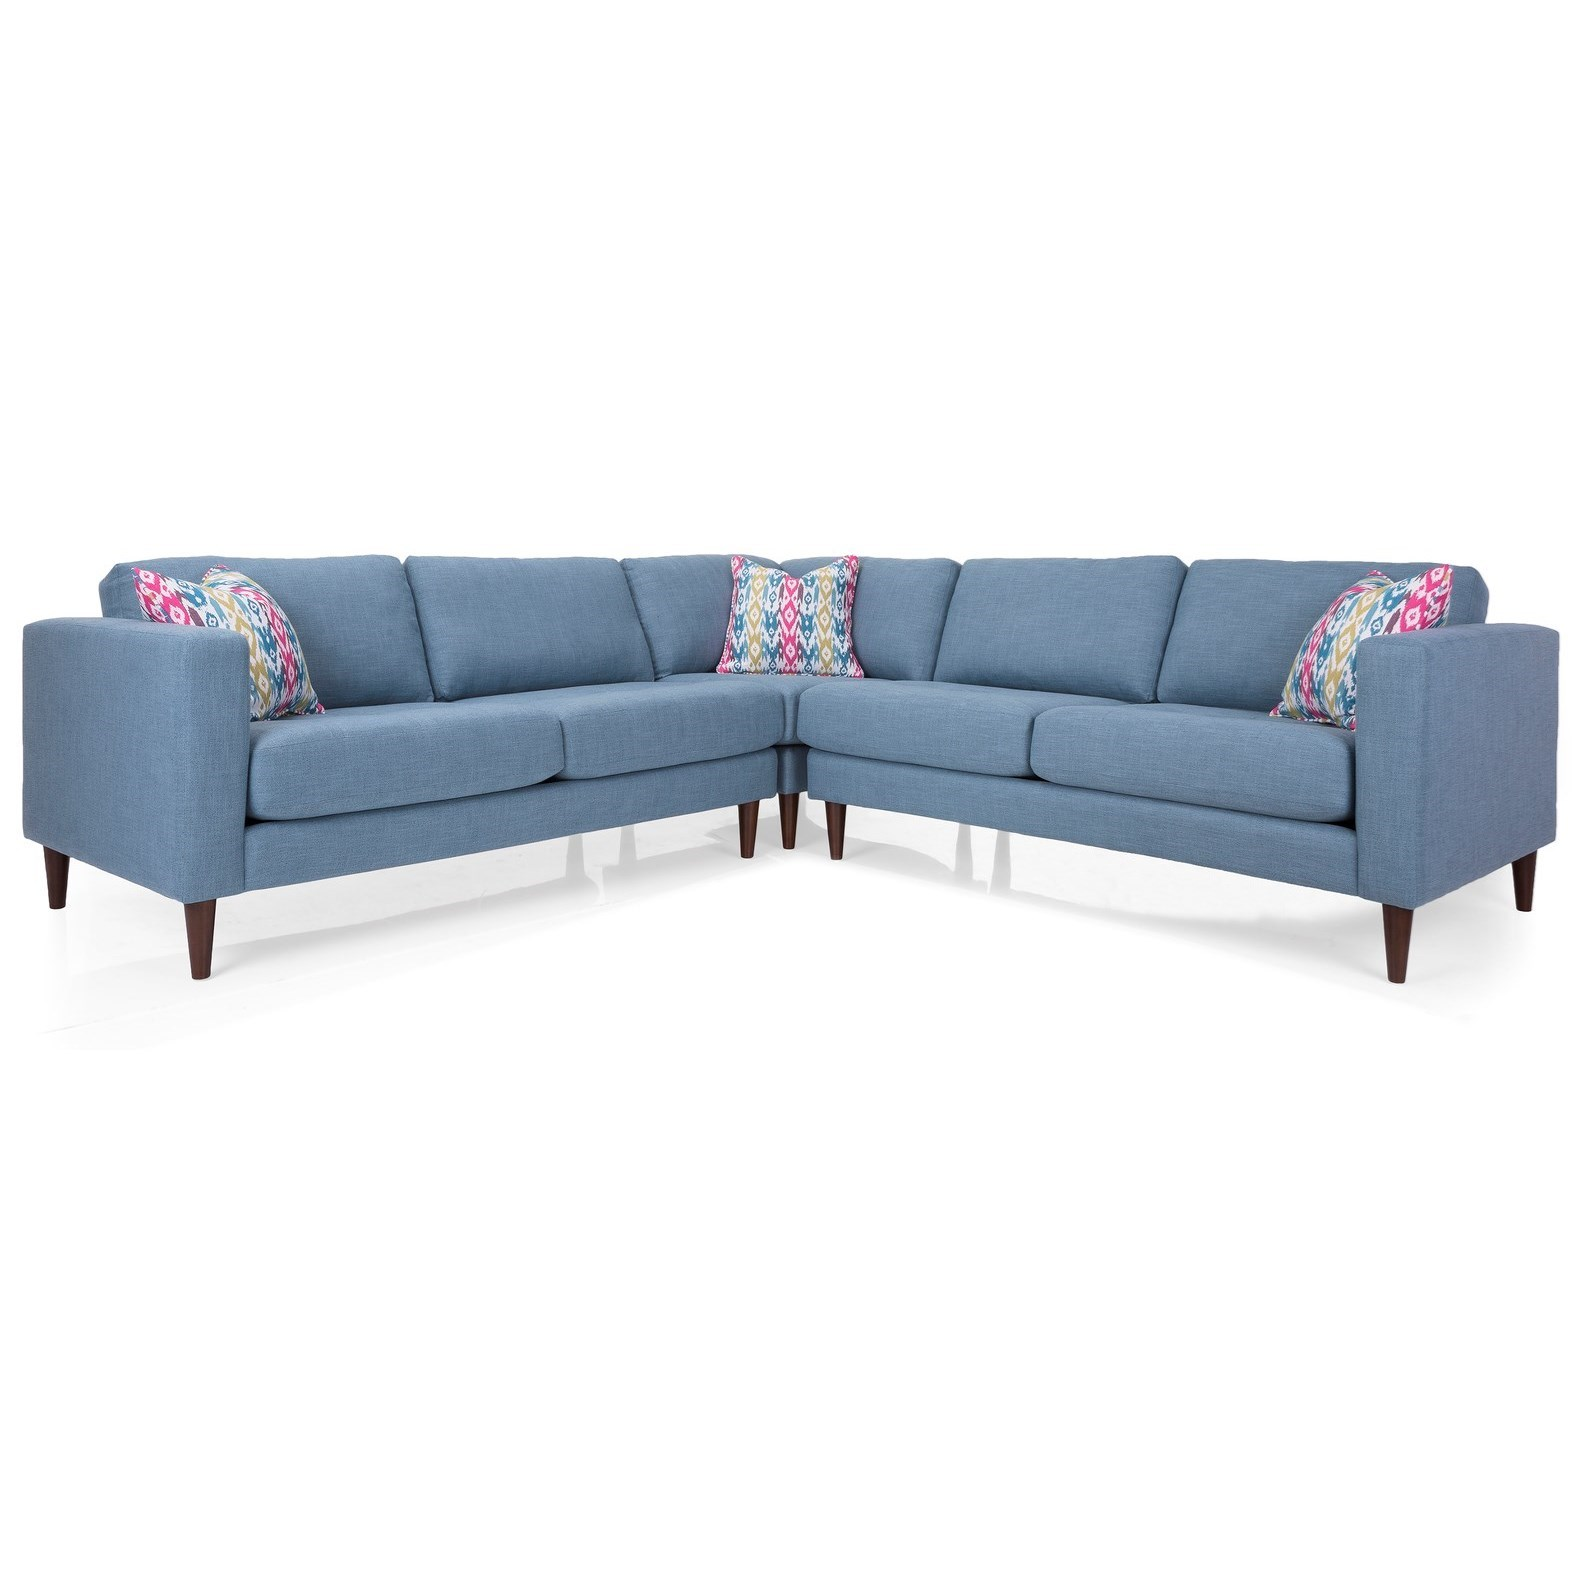 3795 Sectional Sofa by Decor-Rest at Upper Room Home Furnishings